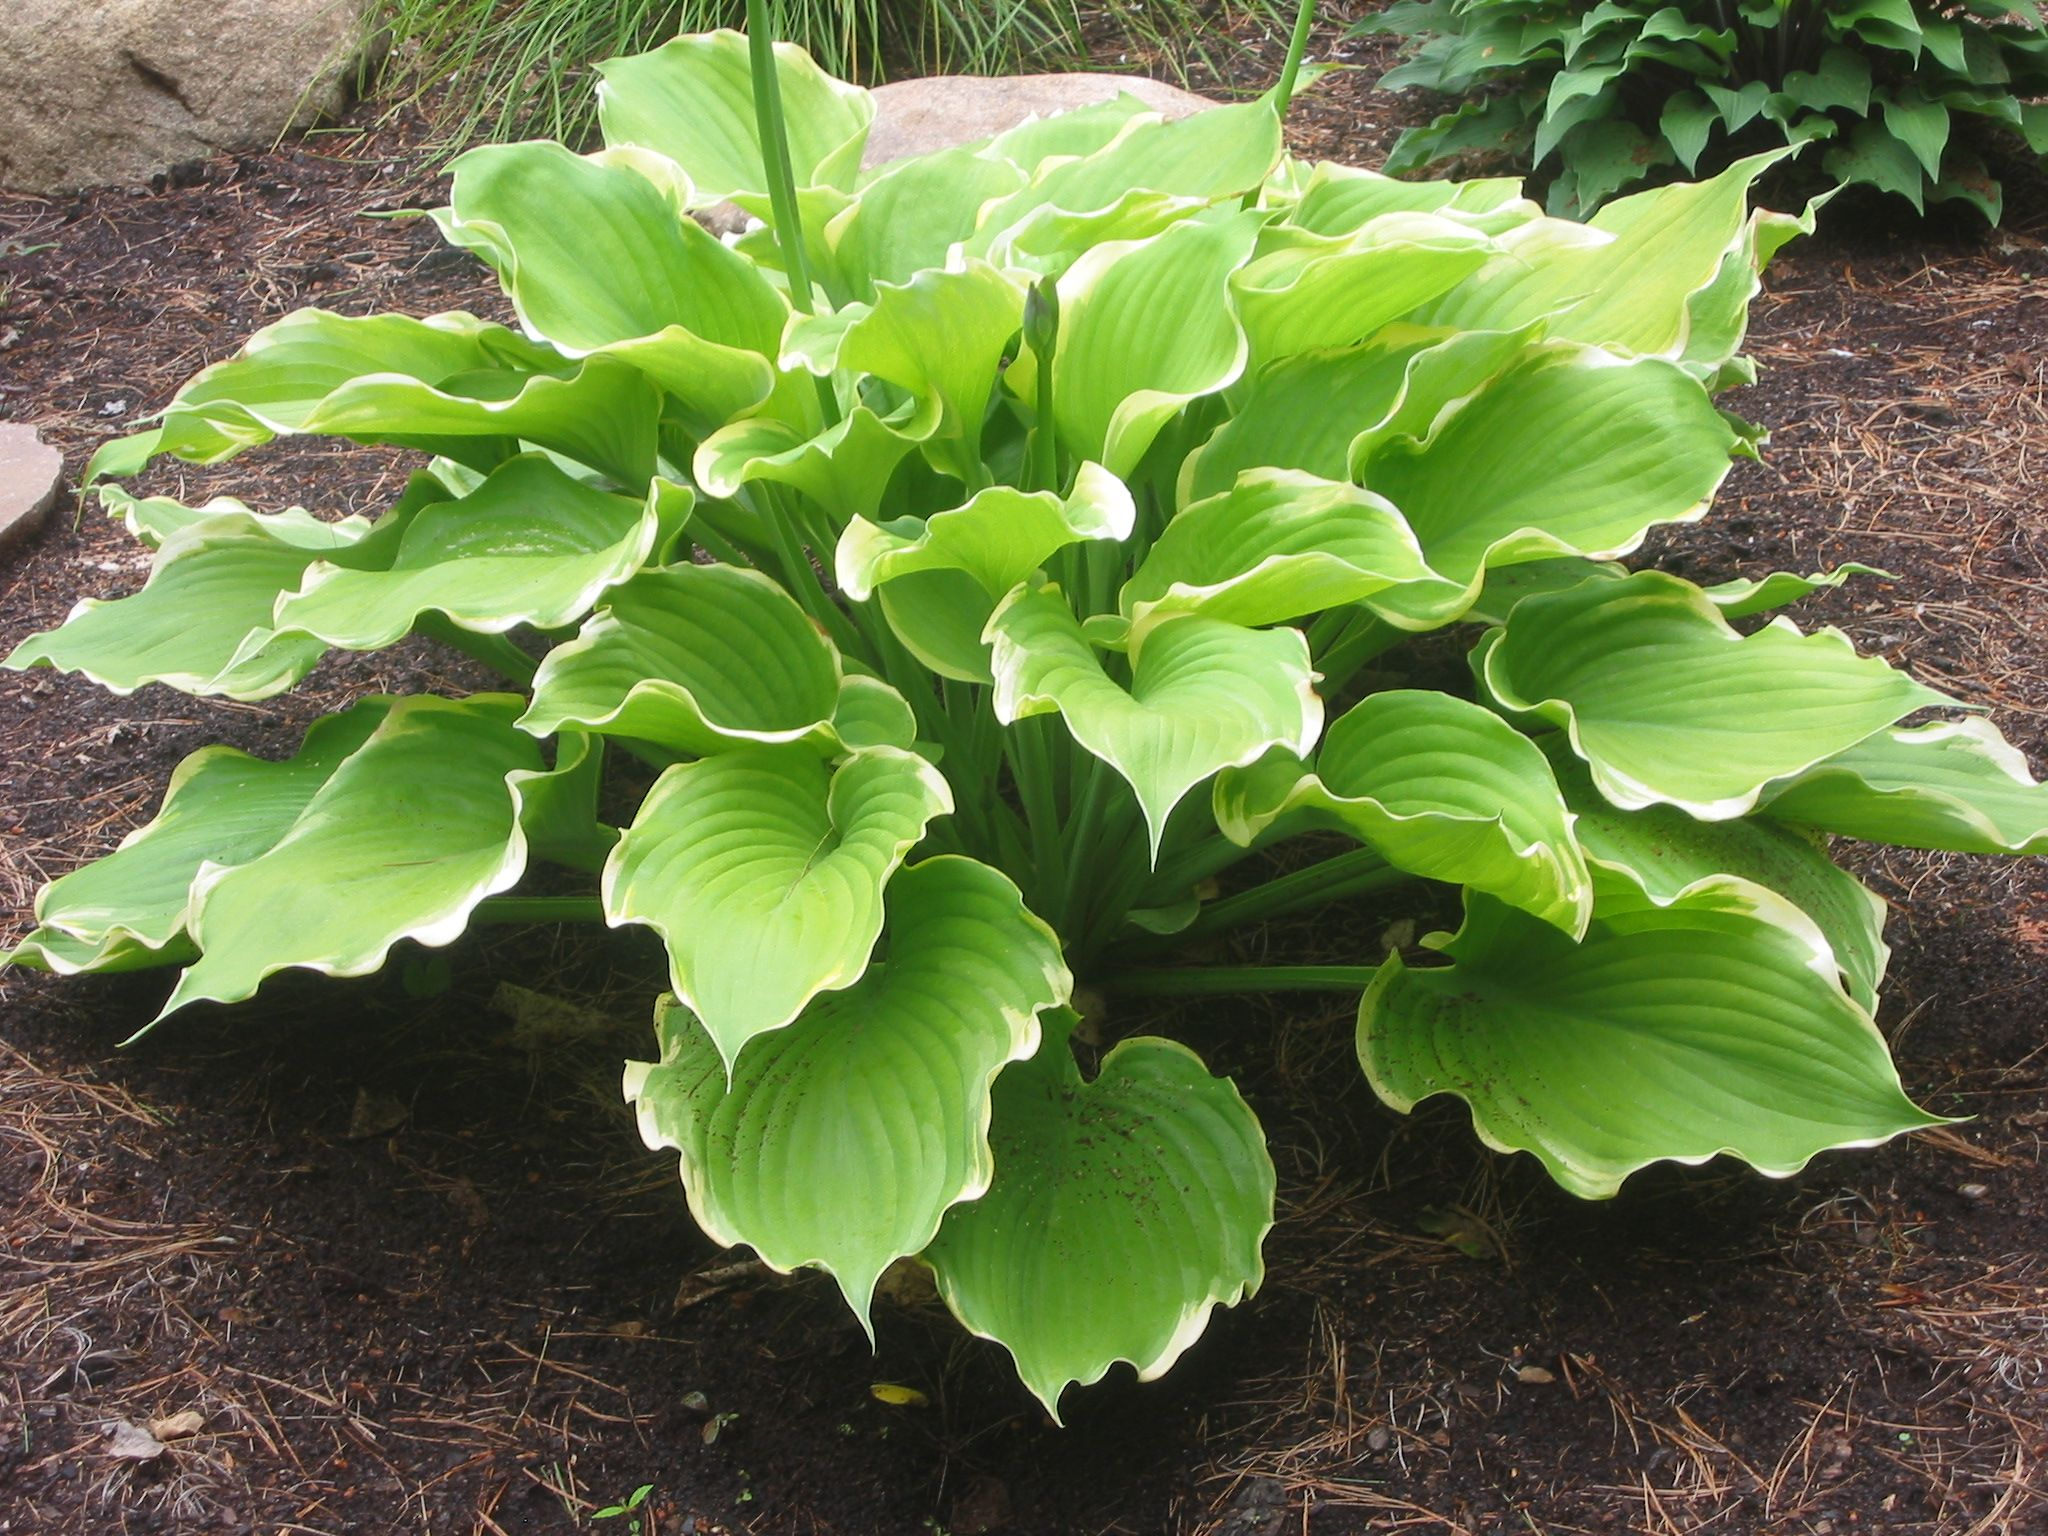 Hosta 'Winter Snow', a brilliant variation on 'Sum & Substance', with delicate variegation. Stunning.